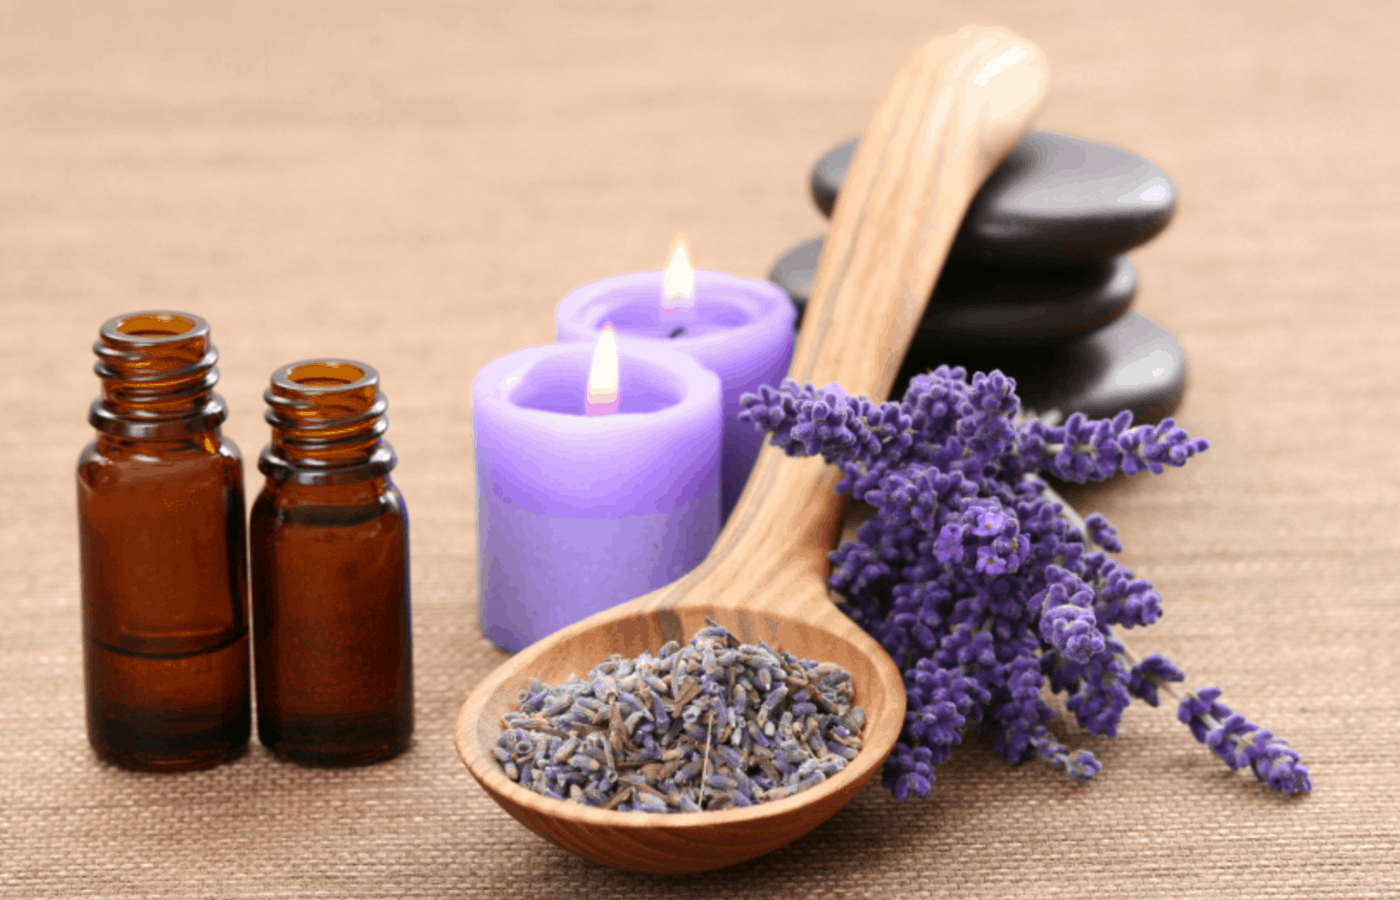 Can Warming Oils Be Used in Candle Making